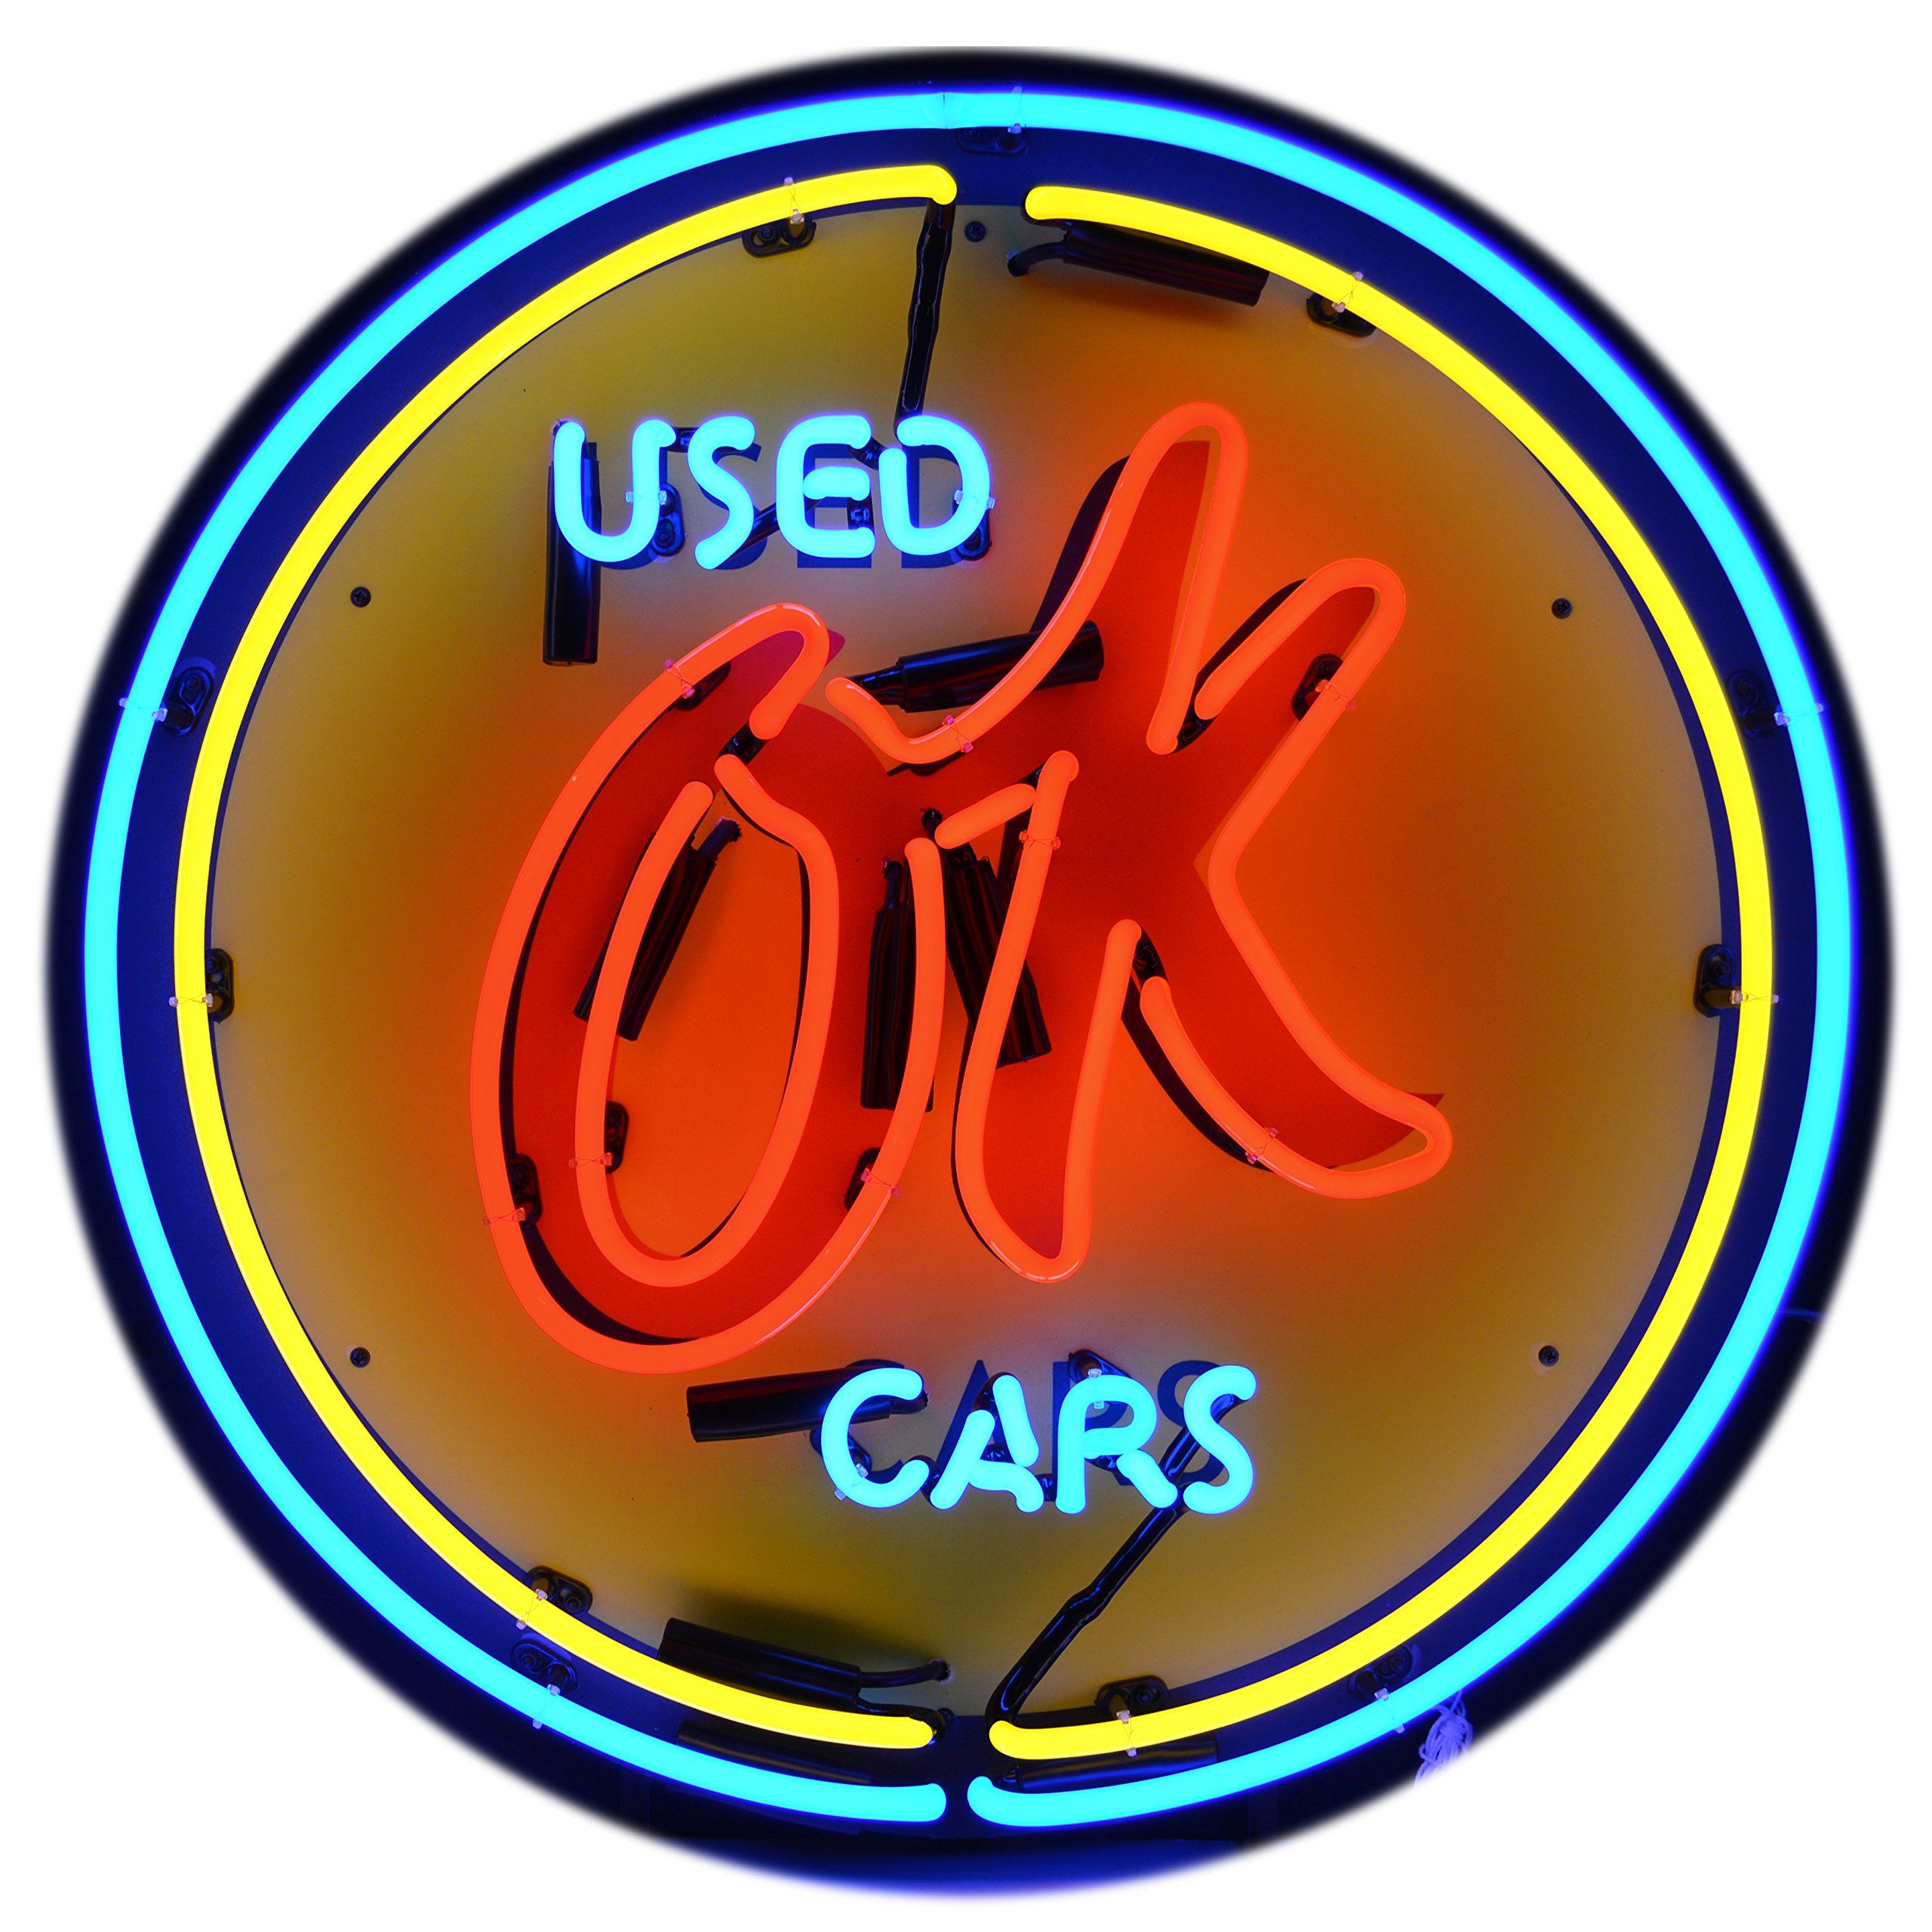 Neonetics 5CHVOK Cars and Motorcycles Chevy Vintage Ok Used Cars Neon Sign